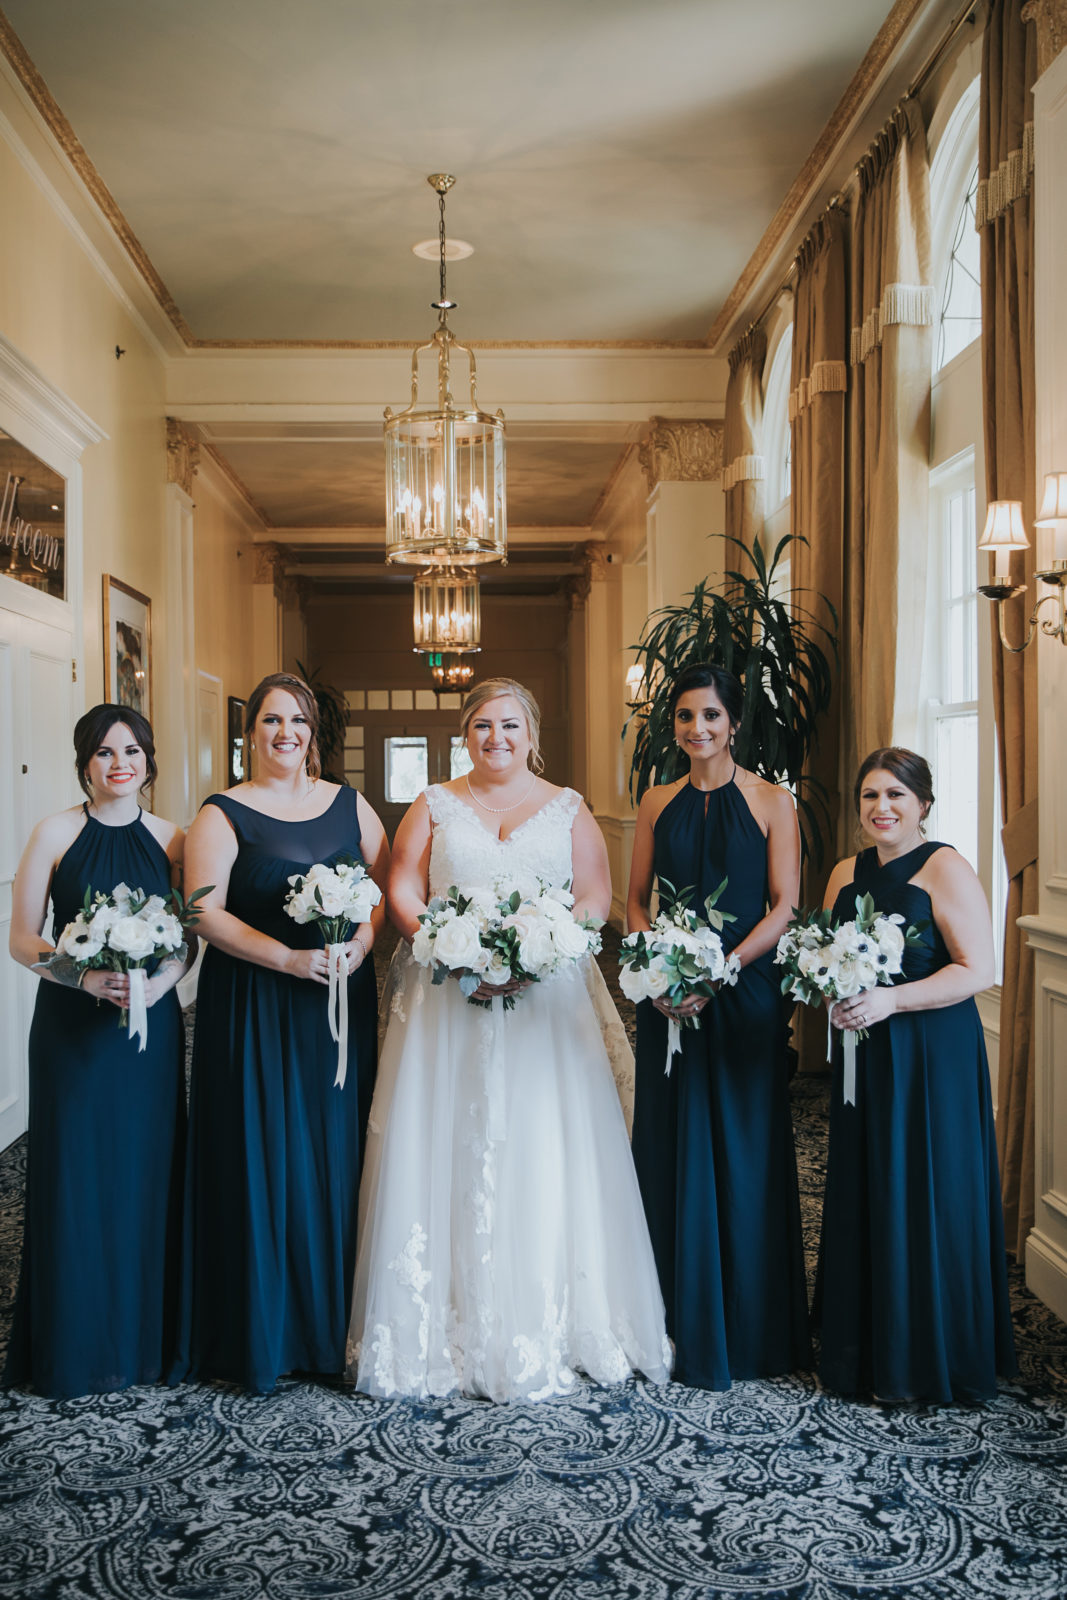 Blue Bridesmaid Dresses: Timeless Greenery and Gold Wedding at The Filter Building